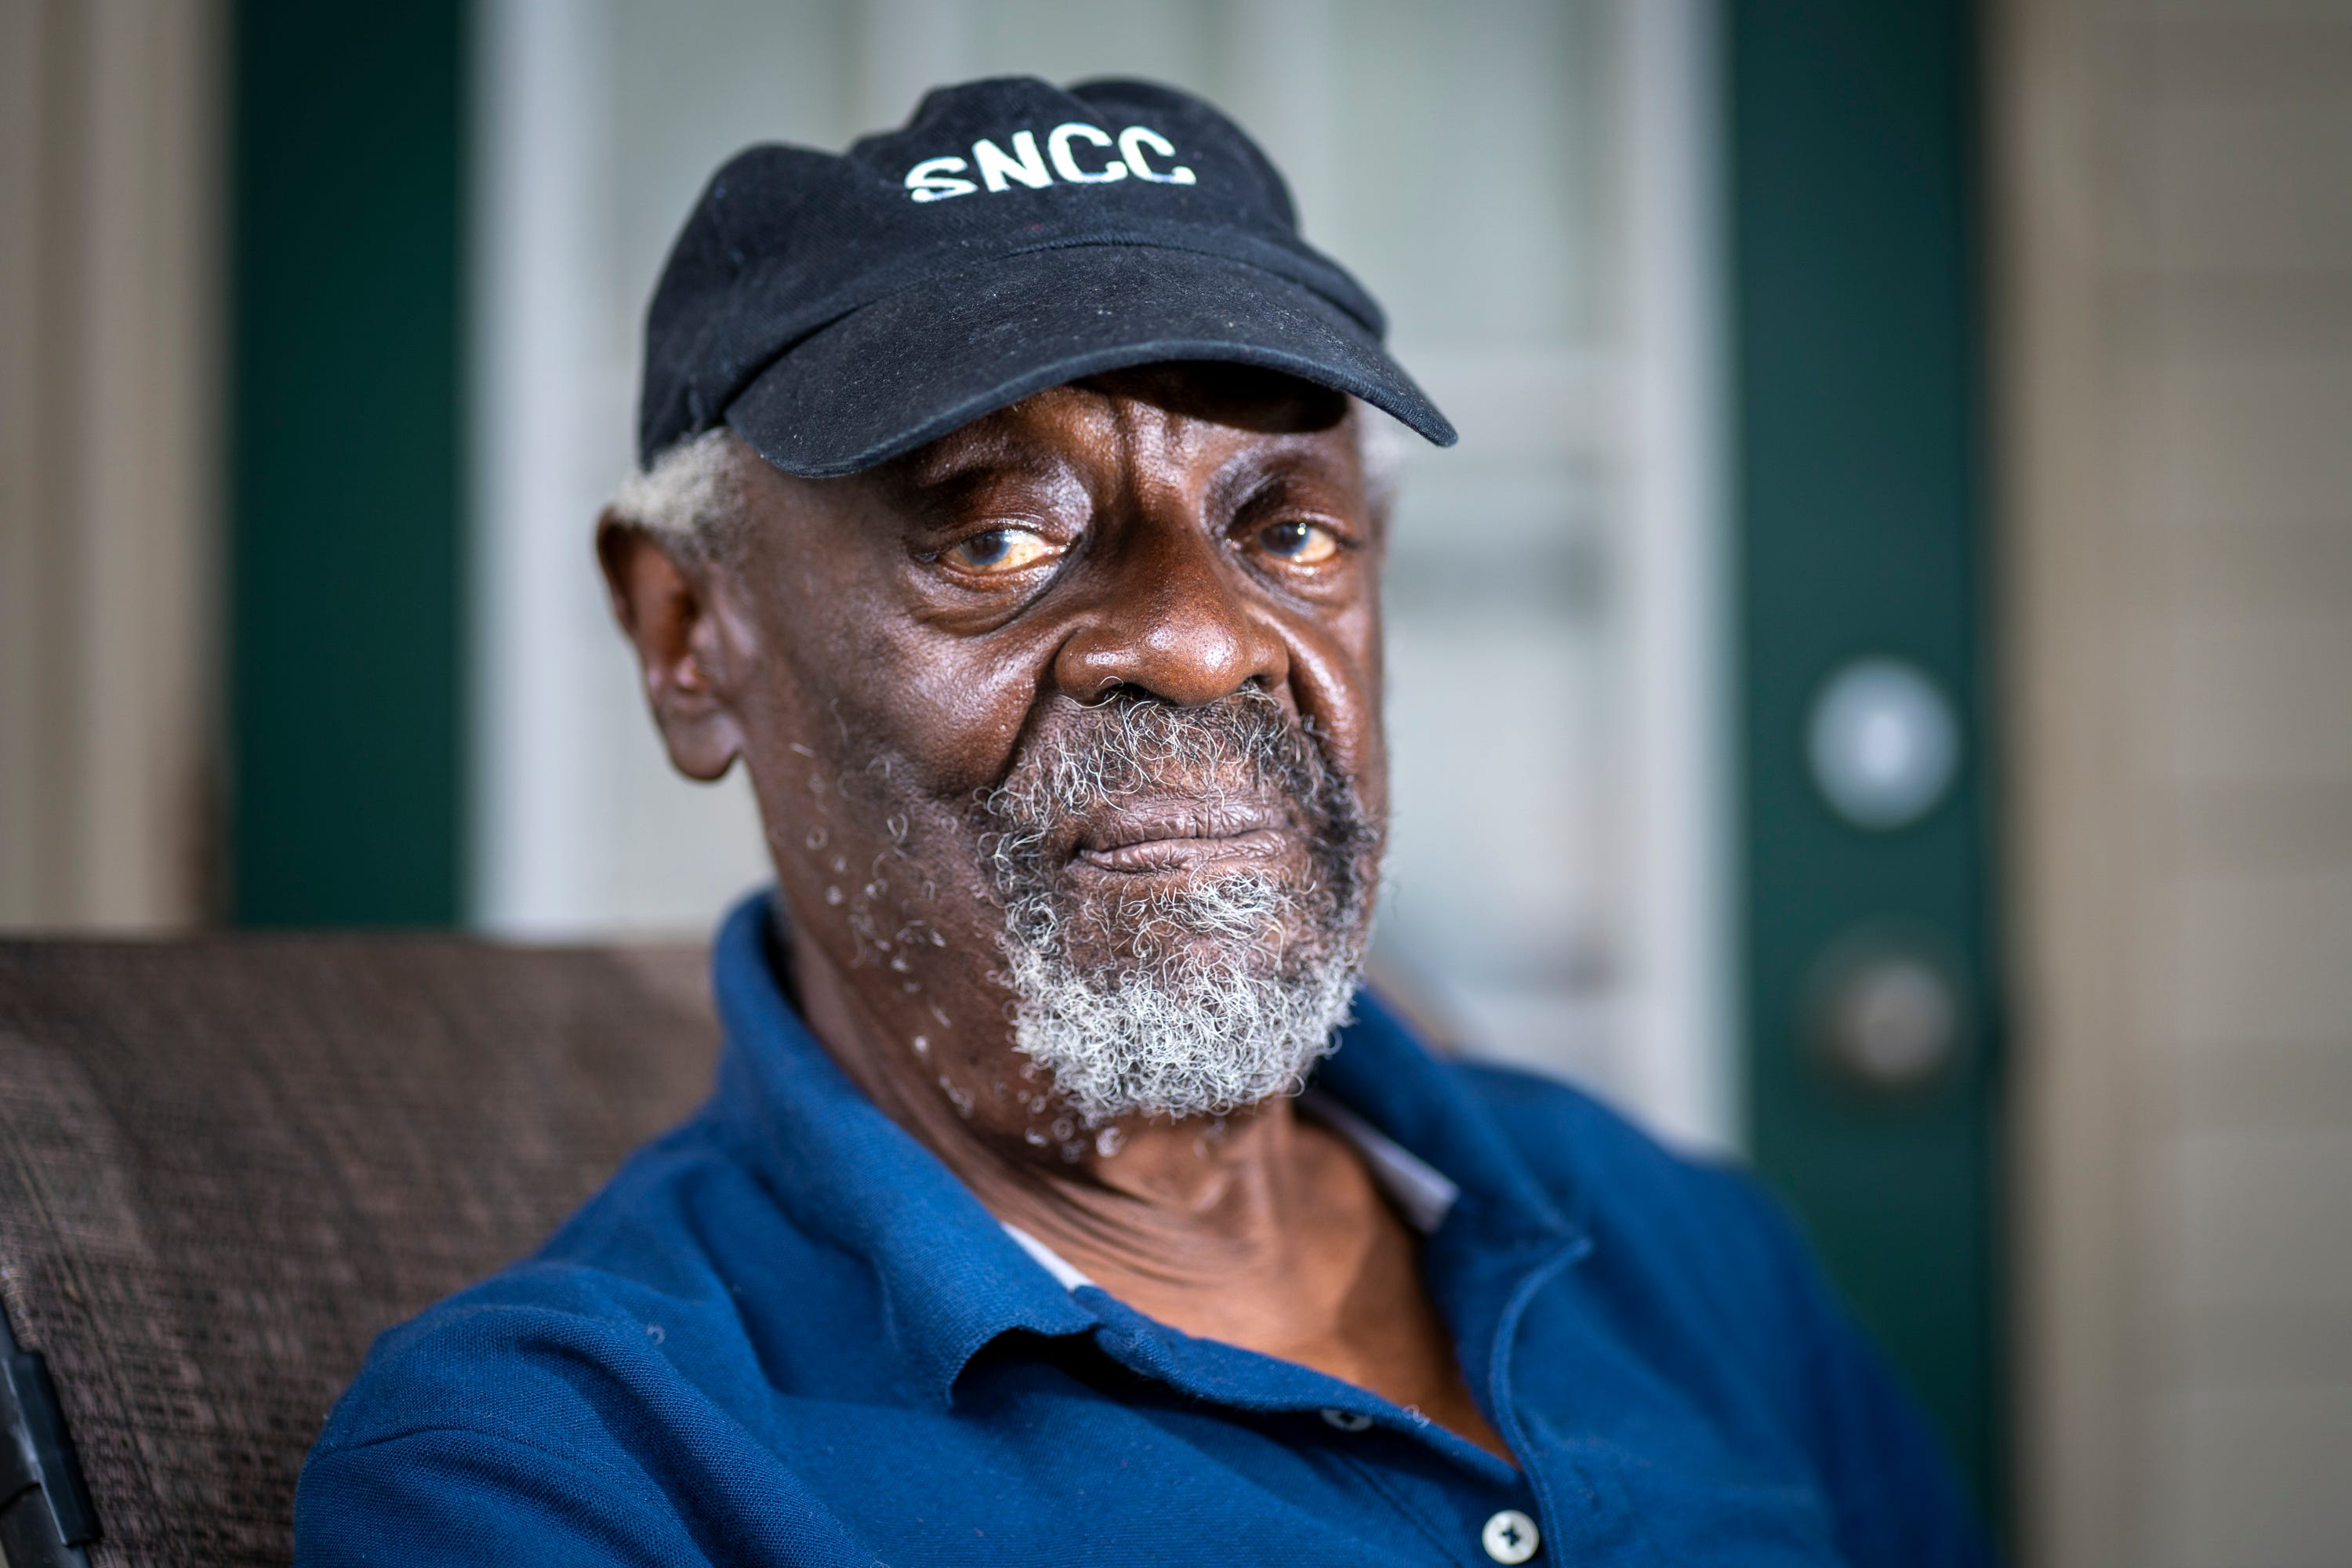 """Reginald """"Reggie"""" Robinson, who coordinated voting registration efforts in McComb, Miss., with the Student Nonviolent Coordinating Committee, at his home in Baton Rouge, La., July 31, 2021."""